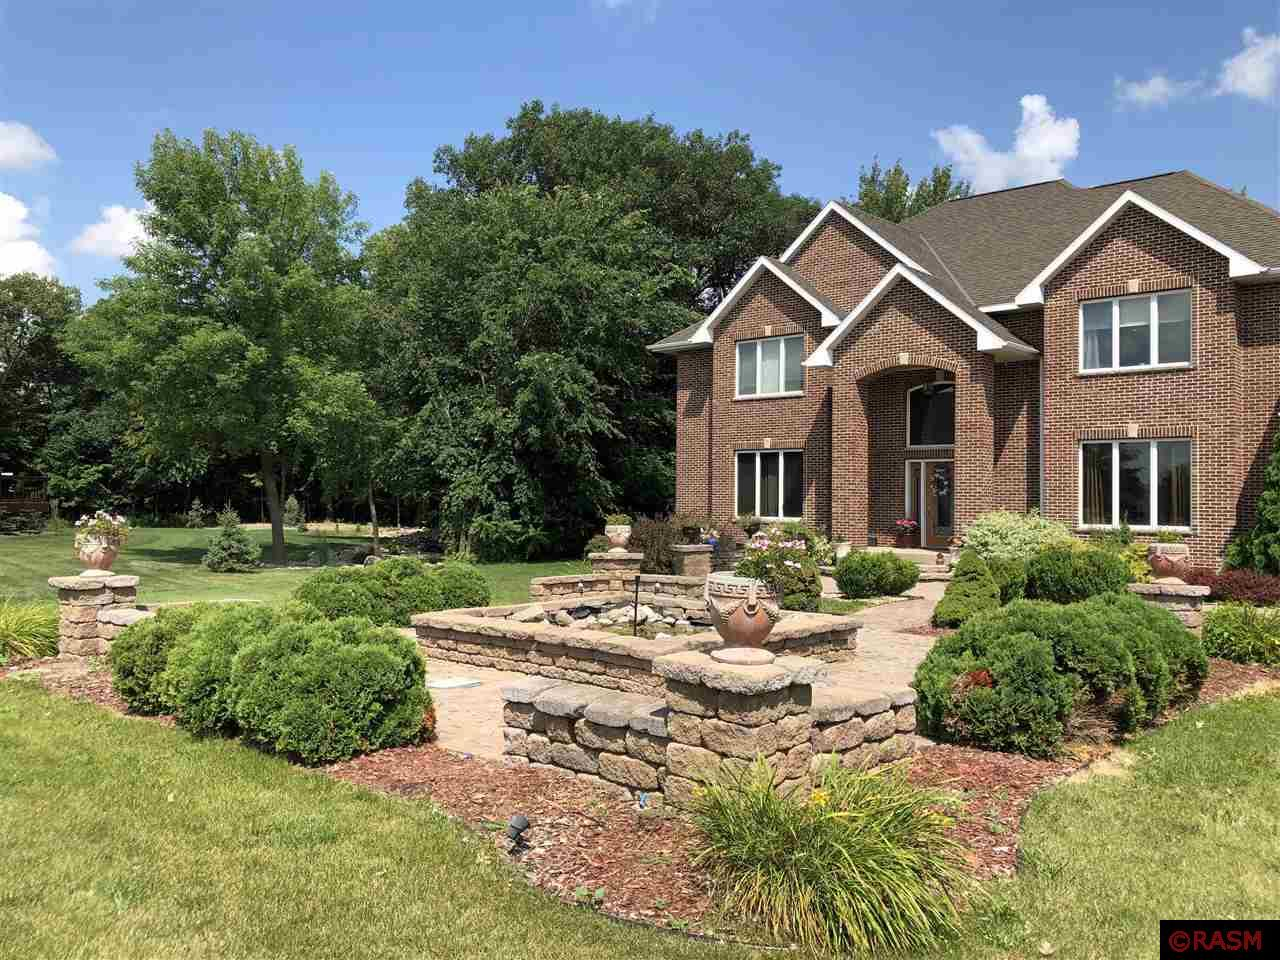 This two-story, quality-constructed, custom brick home offers great space for any lifestyle. Home features beautiful hardwood floors, architectural details and stunning stonework on three gas fireplaces.  An eat-in kitchen is featured along with separate space for formal dining.  Master bedroom with private on-suite bath.  Three additional bedrooms, laundry room and office on upper level. Lower level includes great room, entertainment space with wet-bar, bedroom, bath and office.  Three stall attached garage is heated and sheet-rocked.  Four season porch with access to maintenance free deck with private backyard. Feels like country living. One acre lot with stone fountain and beautiful landscaping.